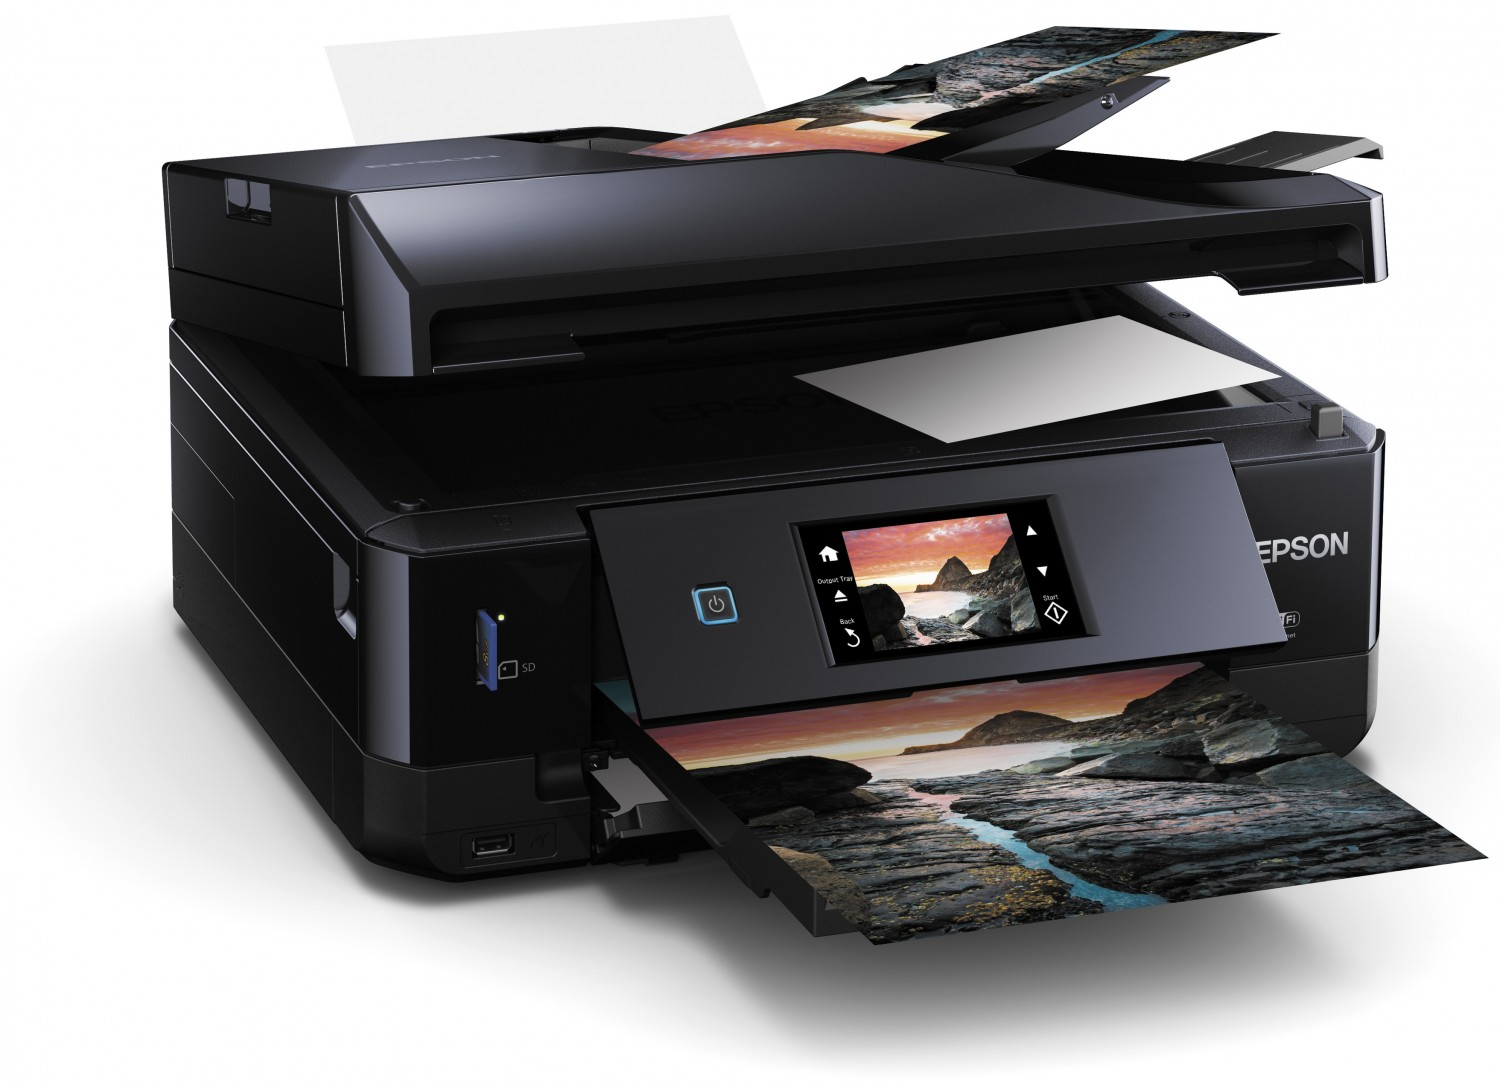 epson Expression Photo XP 860 driver download for window 1